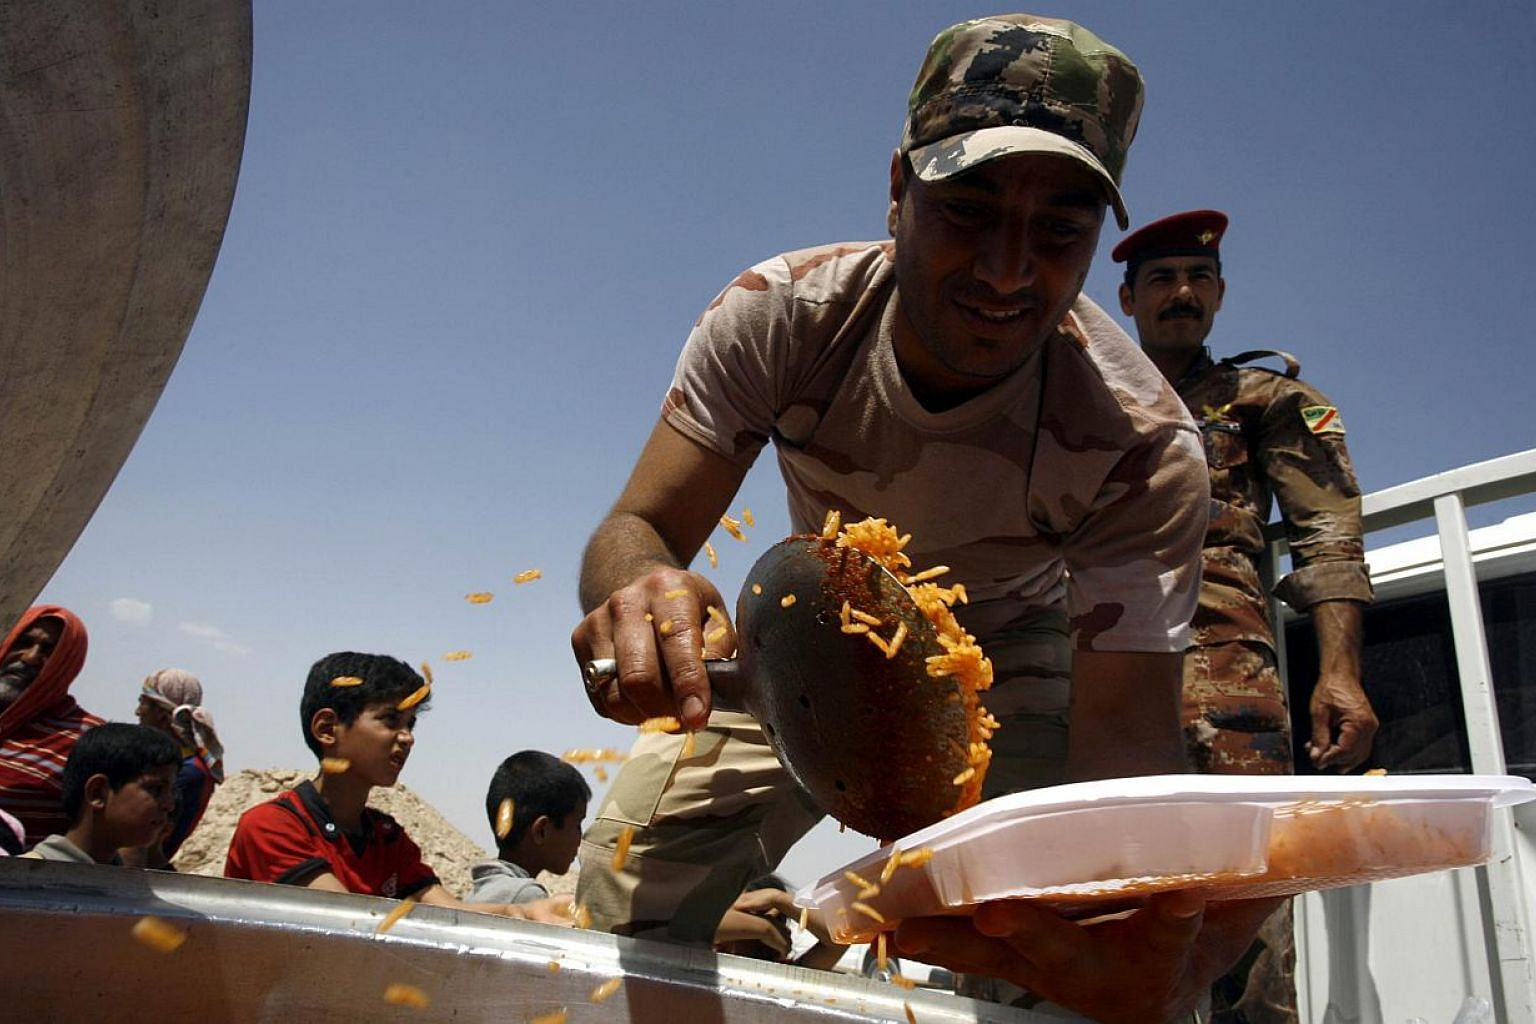 A member of the Iraqi government forces distributes food to displaced Iraqis who fled Anbar province due to the ongoing conflict between pro-government forces and Islamic State (IS) group jihadists, at a makeshift camp for internally displaced person